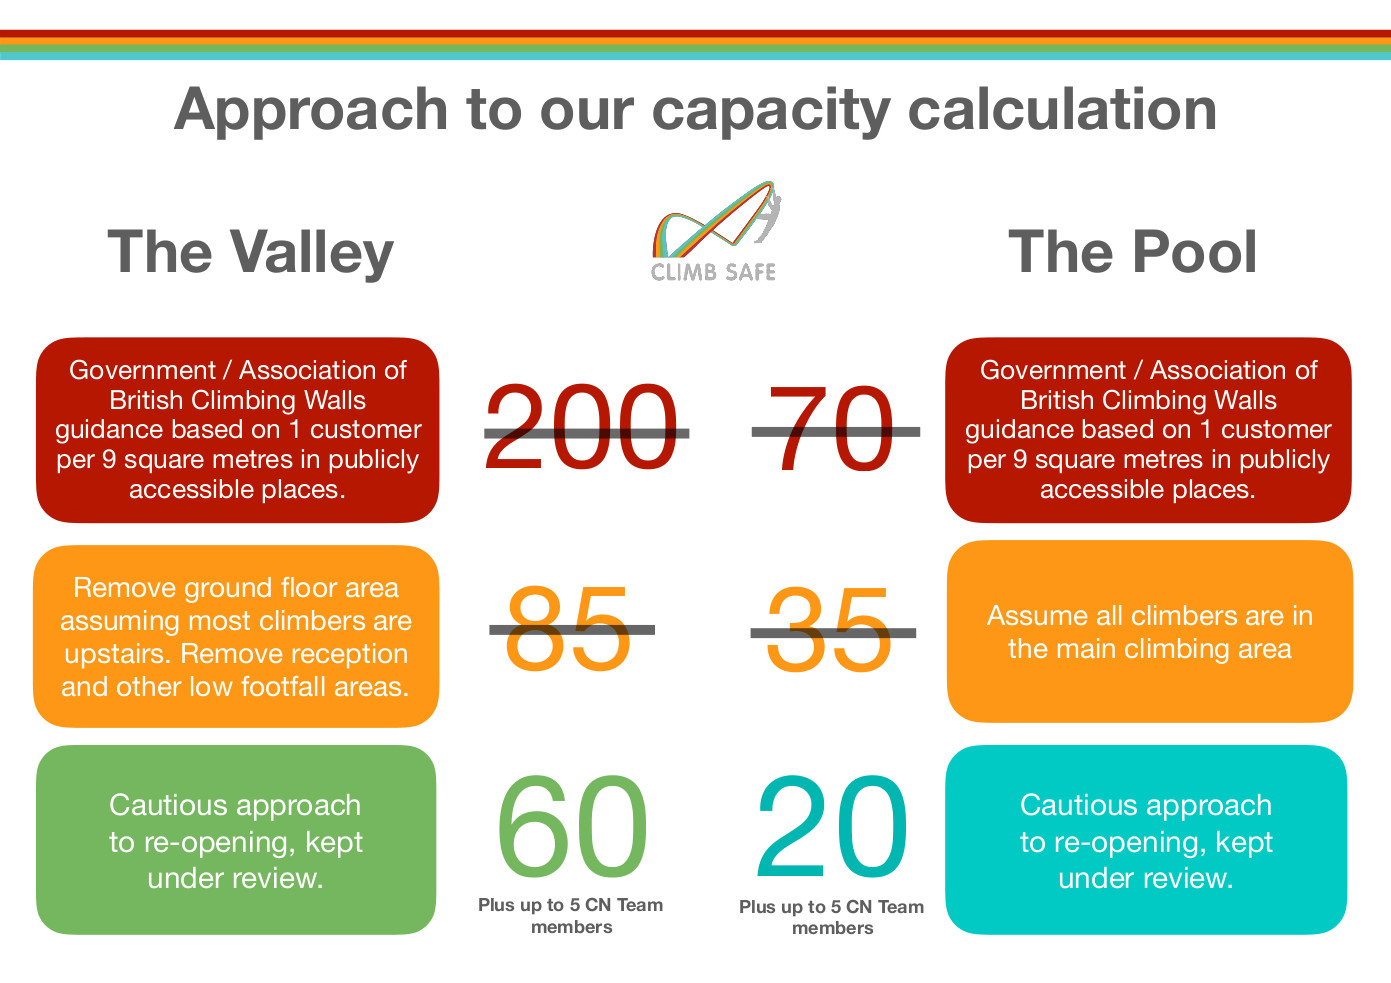 By  looking at guidelines of 1 climber per 9 square metres and making conservative estimates on where climbers will be at the centre, we have come up with capacities of 60 and 20 climbers for The Valley and The Pool respectively.